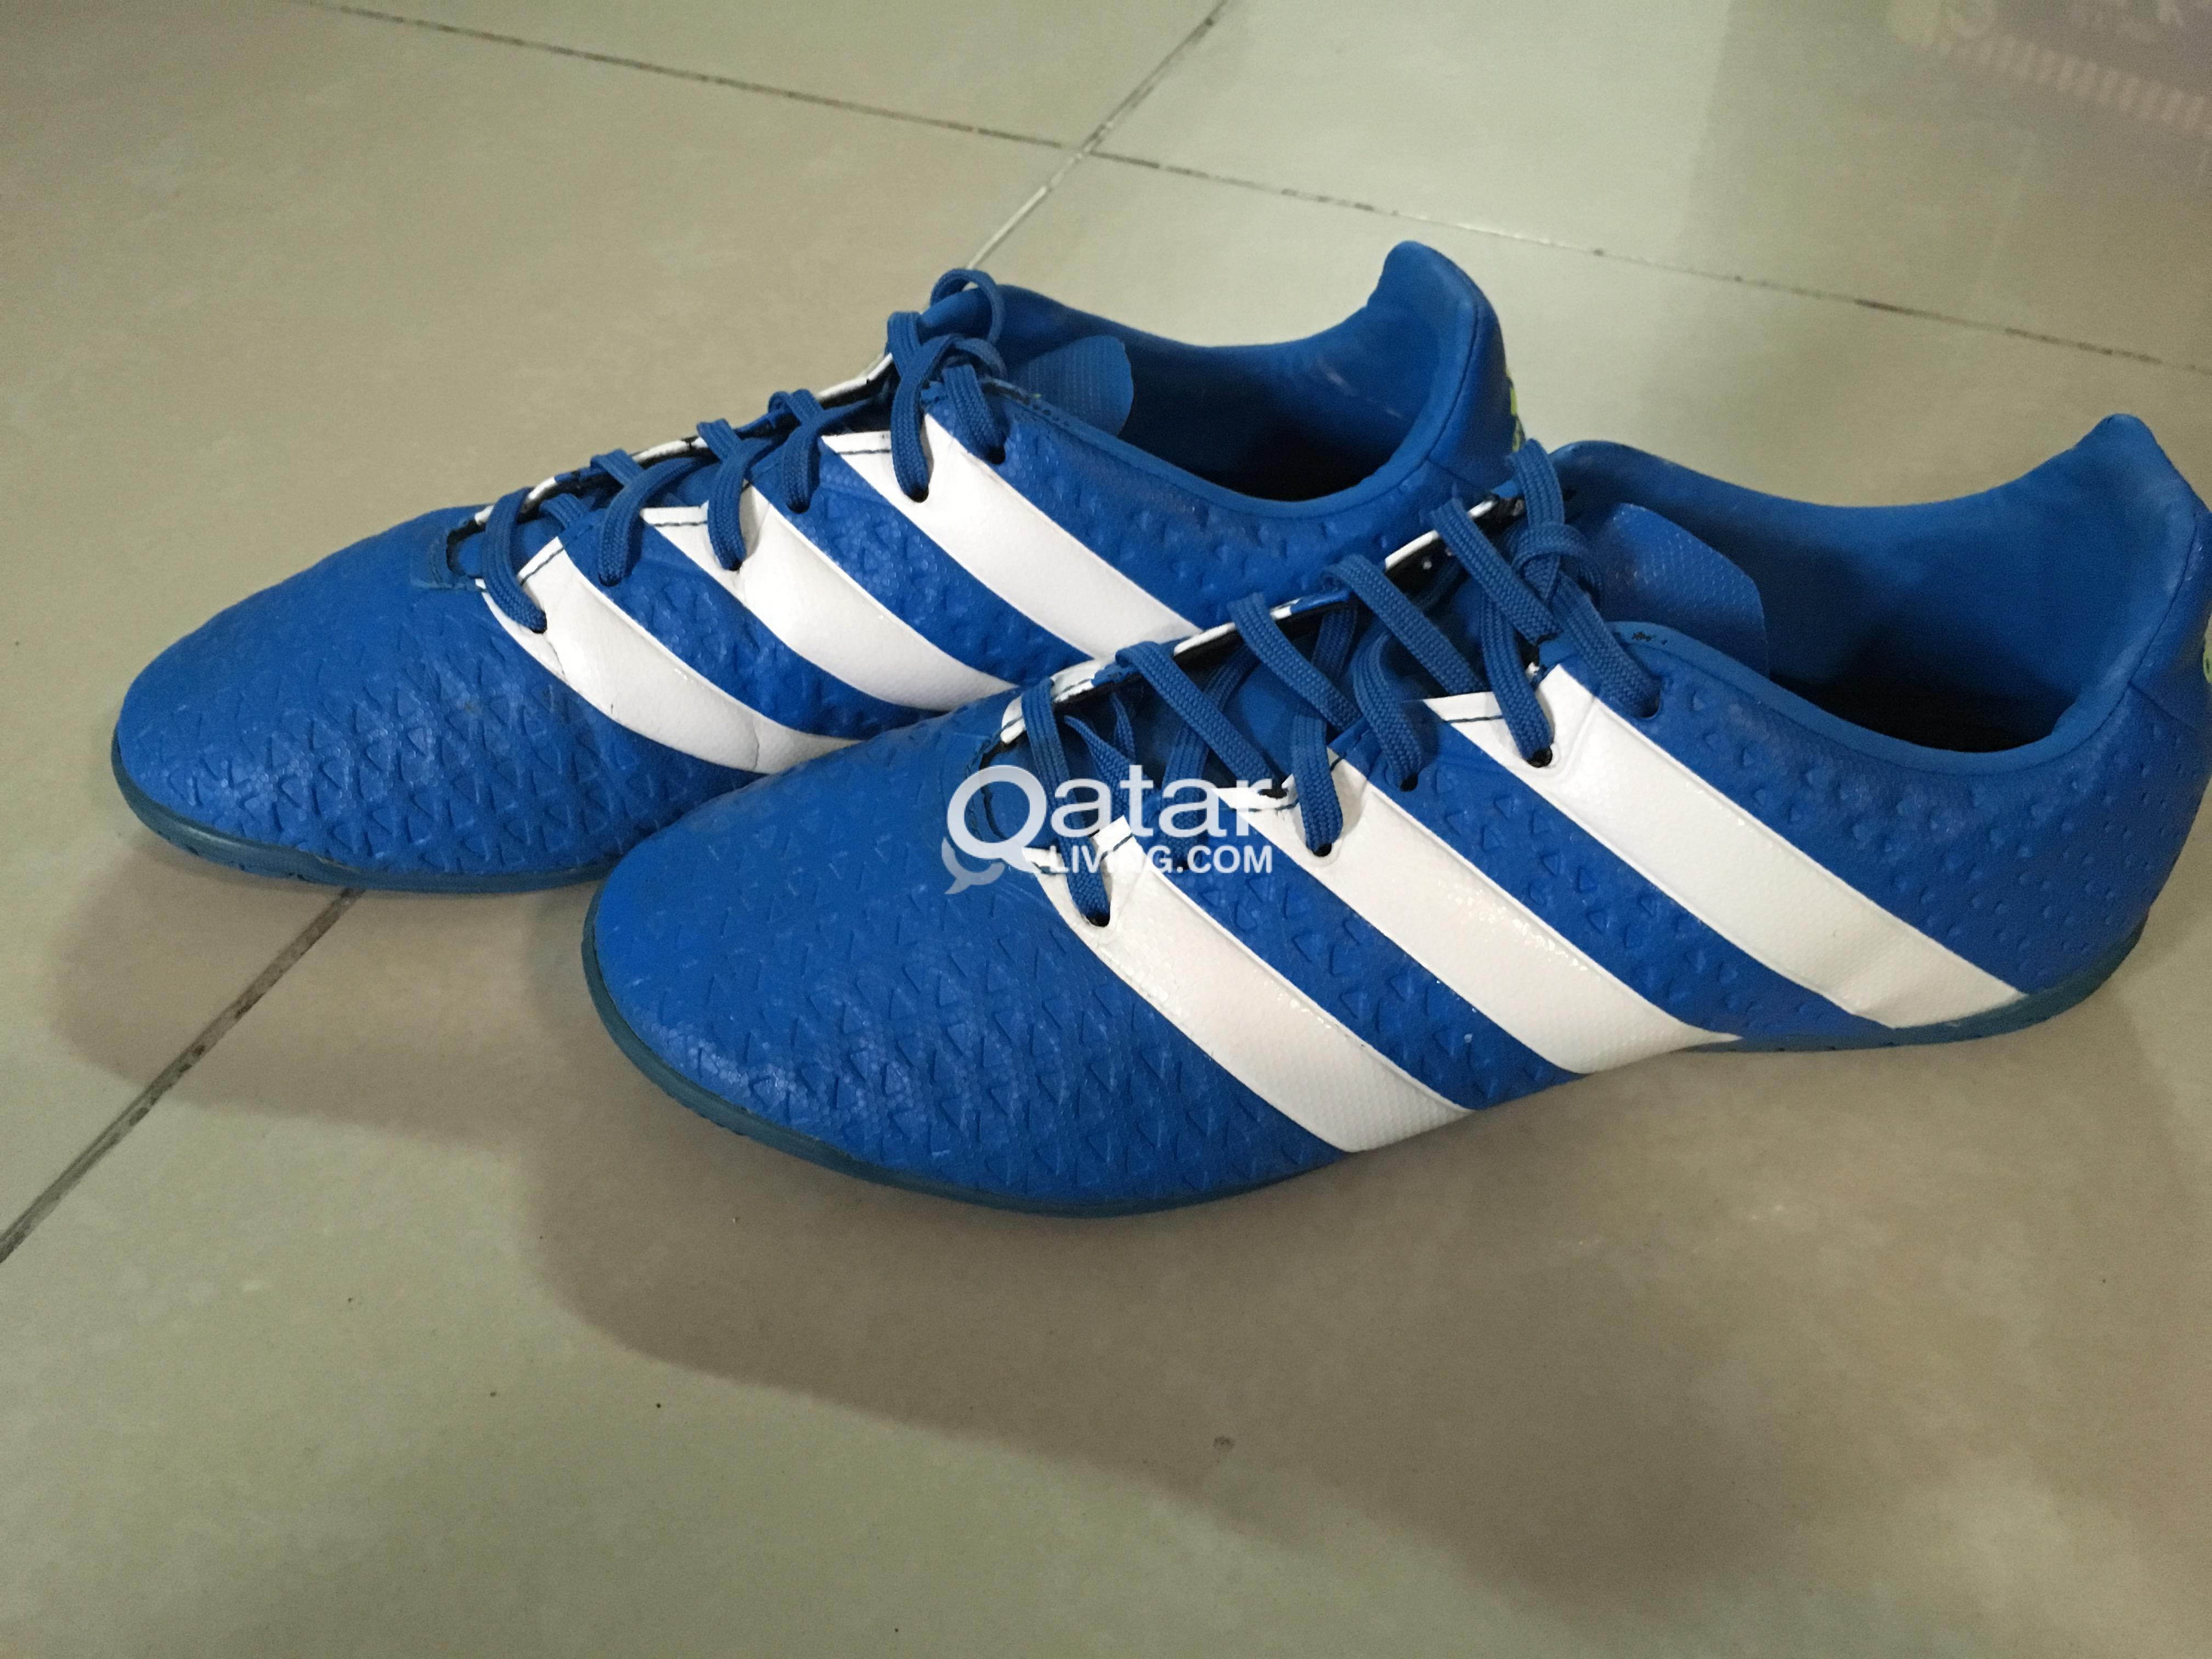 competitive price 9af01 d2195 Adidas Ace Football boots for sale | Qatar Living